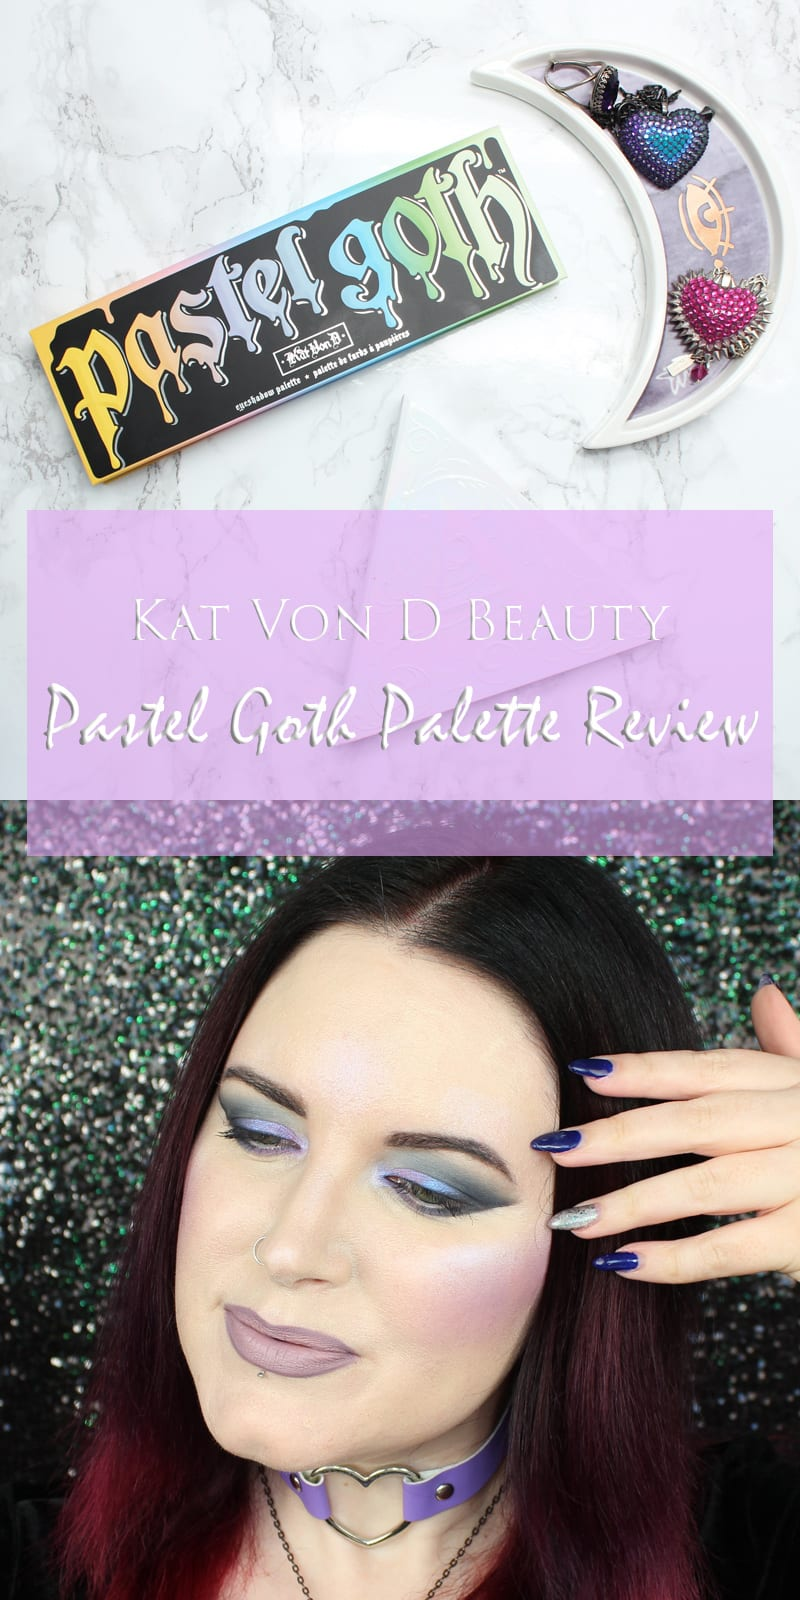 Kat Von D Pastel Goth Palette Review, Live Swatches, Story Time & Drama, Look